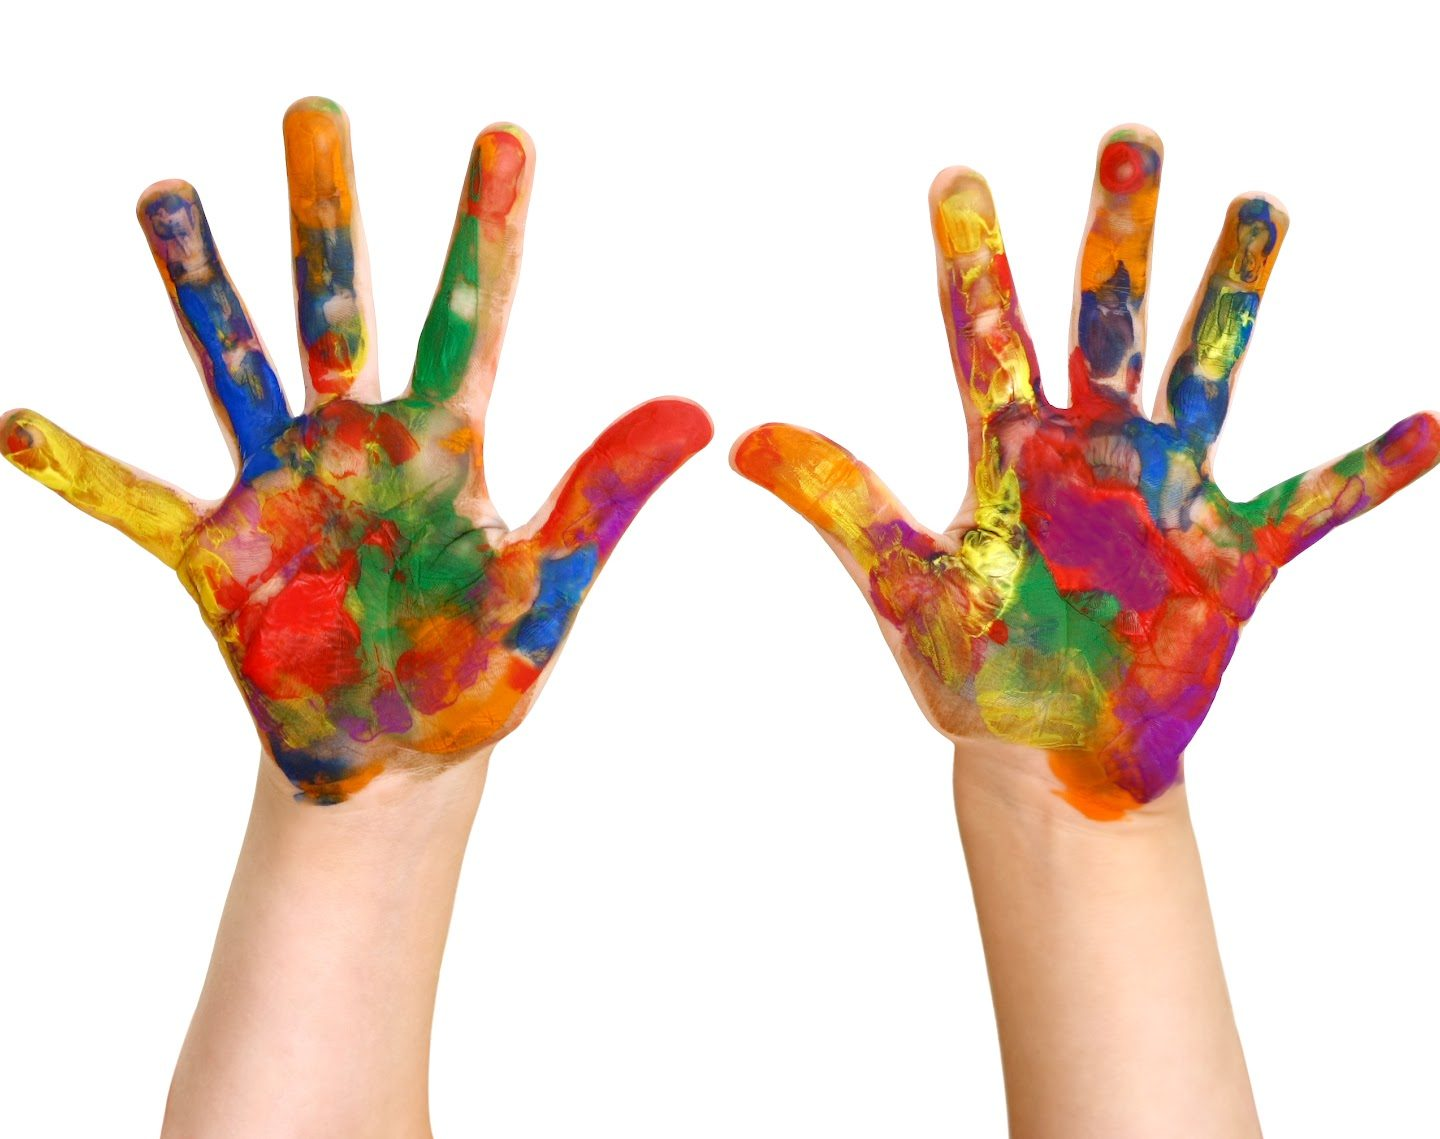 Creative hands, make happy work, on a winter's day!